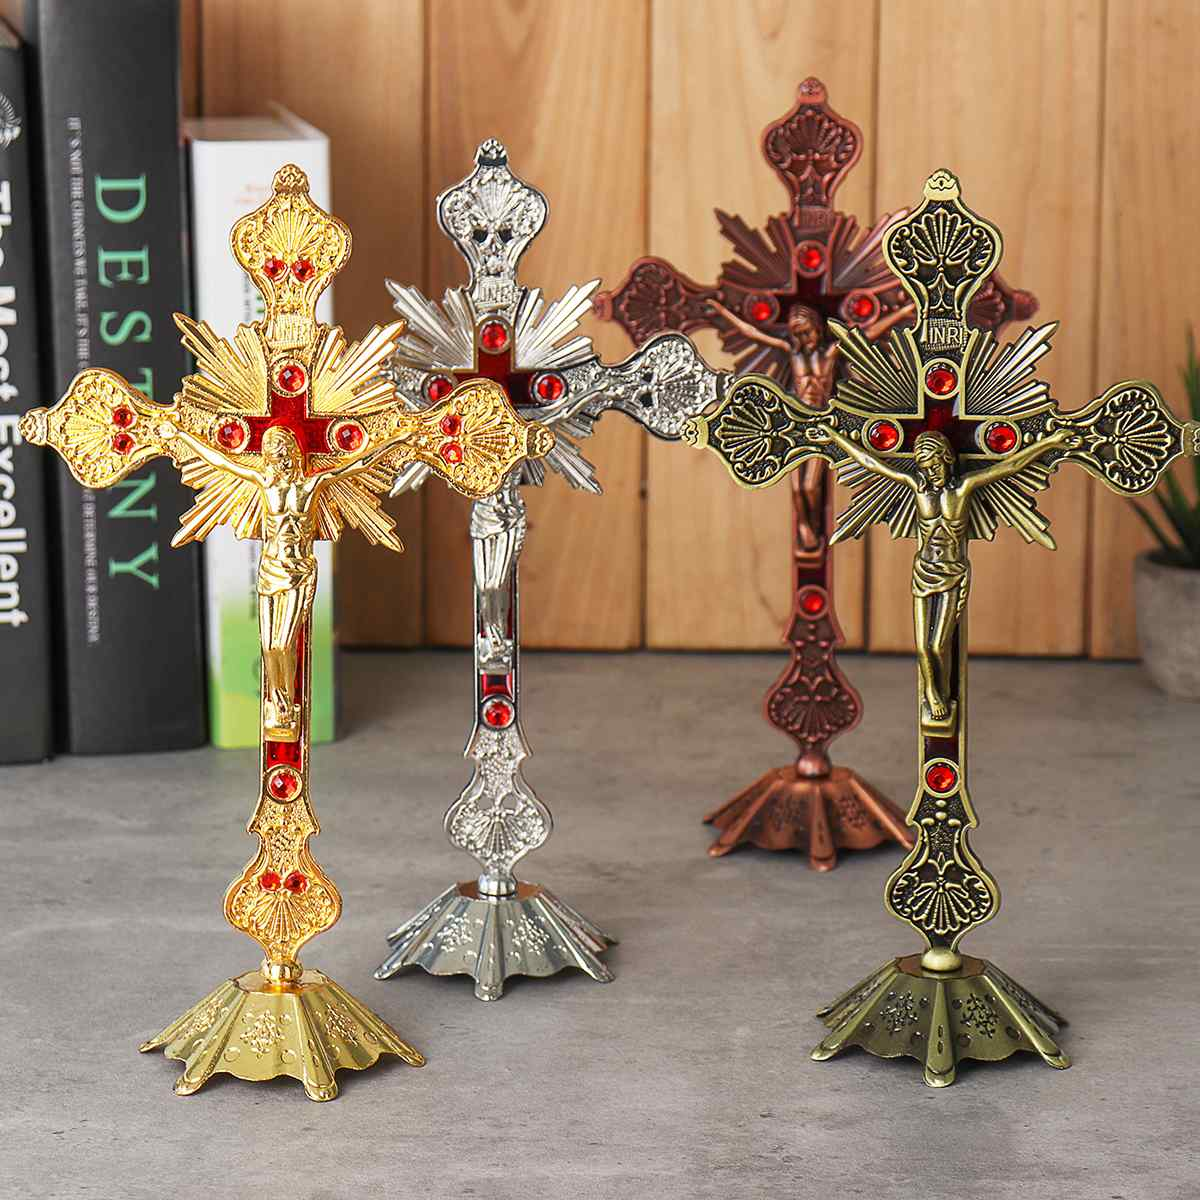 Church Relics Figurines Crucifix Jesus Christ On The Stand Wall Cross Antique Religious Altar Home Chapel Decoration 4 ColorsChurch Relics Figurines Crucifix Jesus Christ On The Stand Wall Cross Antique Religious Altar Home Chapel Decoration 4 Colors